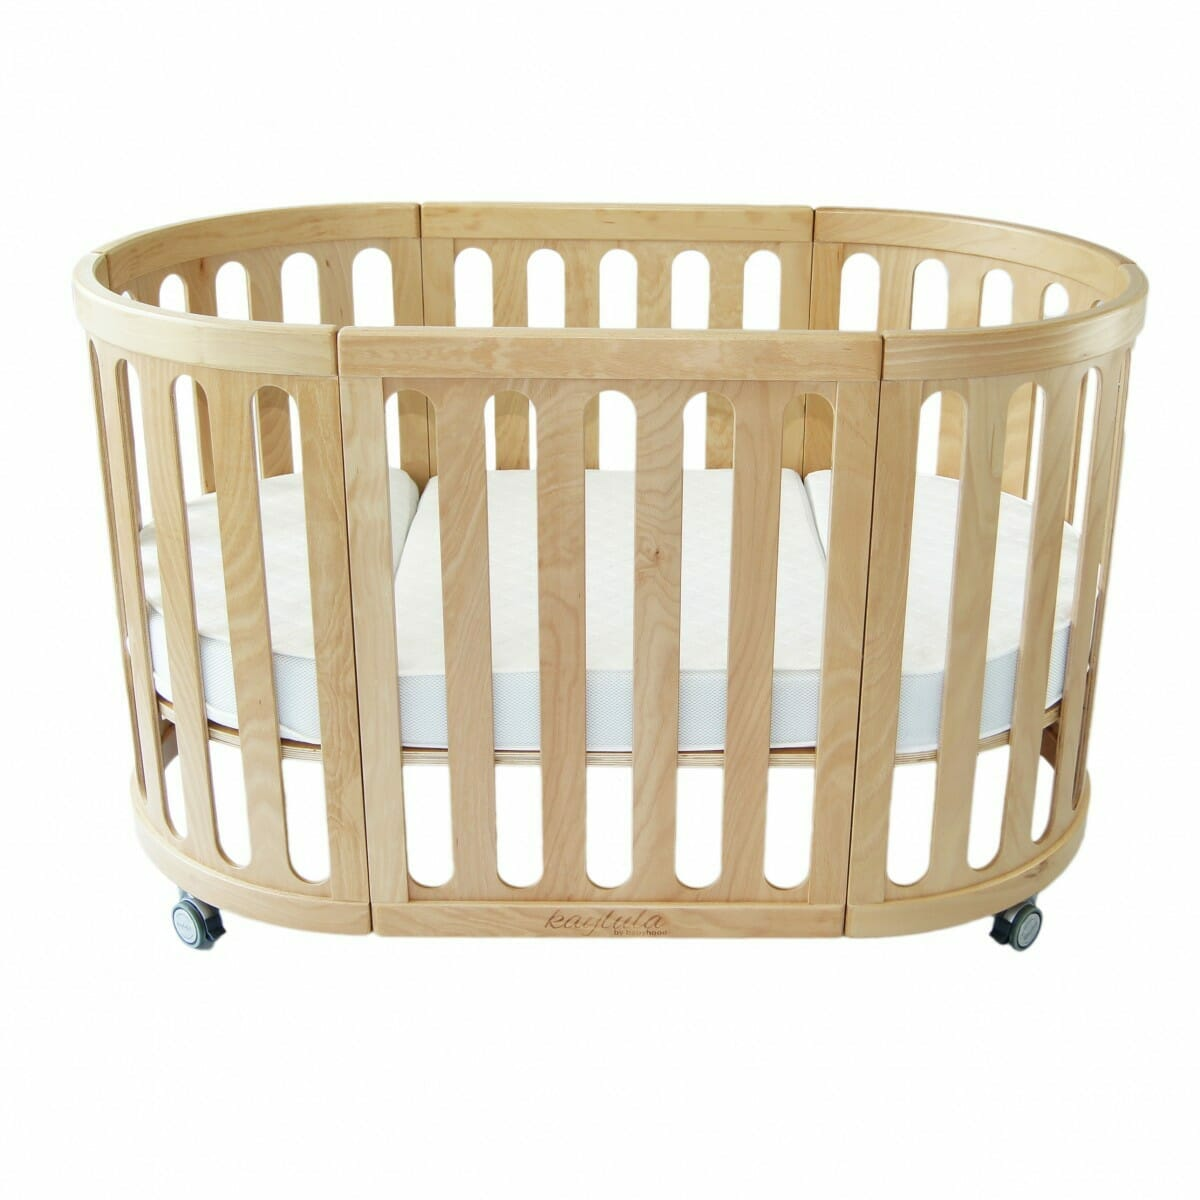 Kaylula Sova Classic 5 in 1 Cot Beech Cot